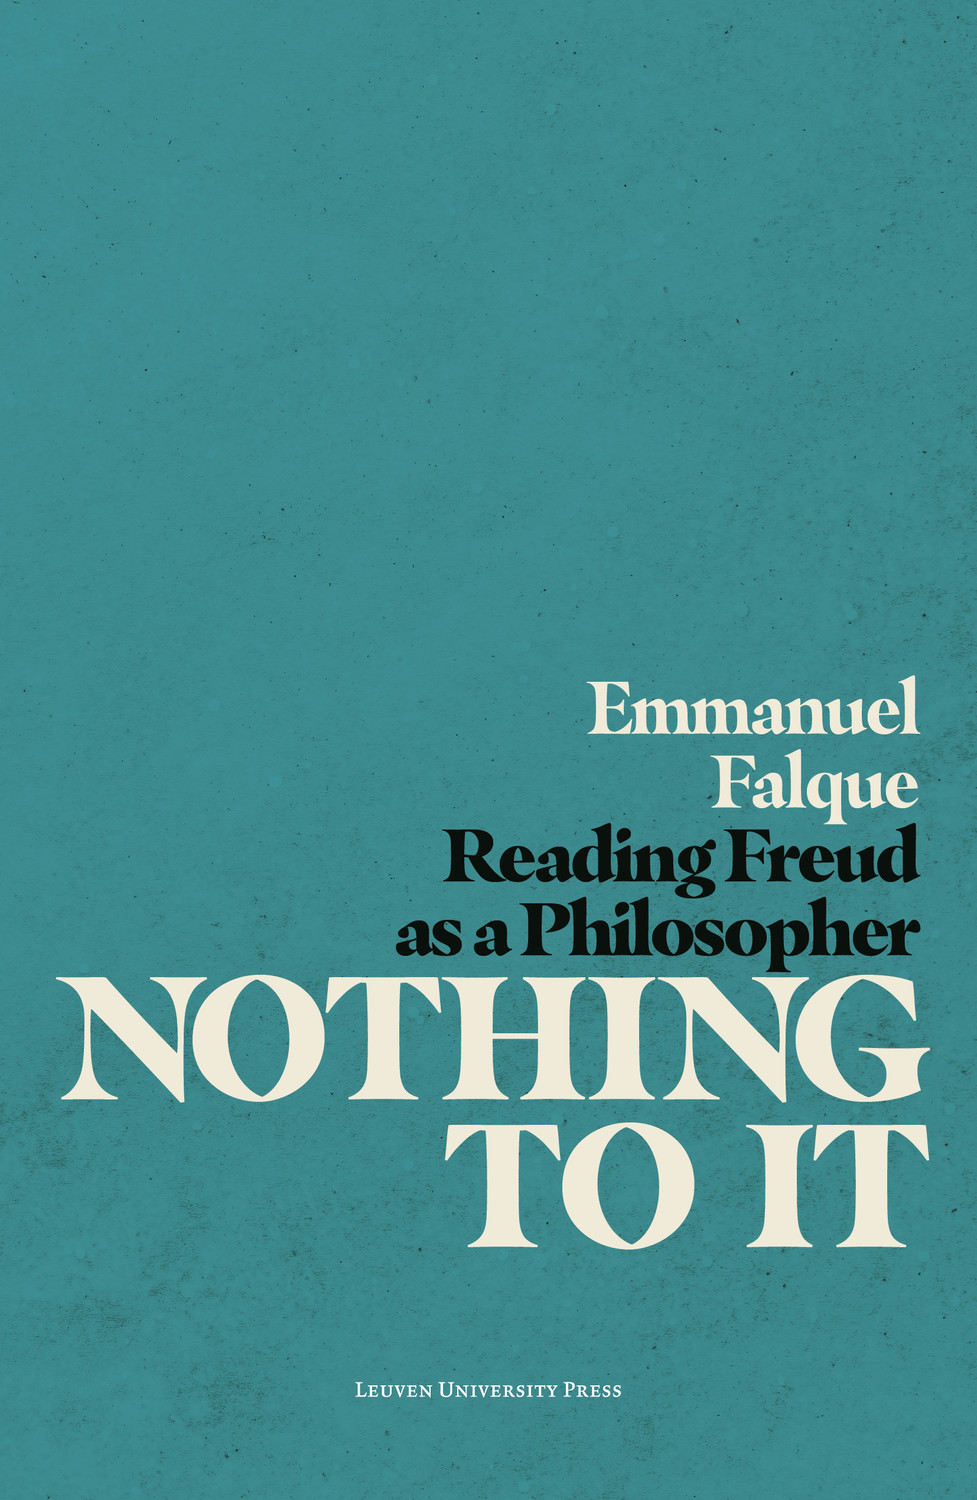 Nothing to It: Reading Freud as a Philosopher Couverture du livre